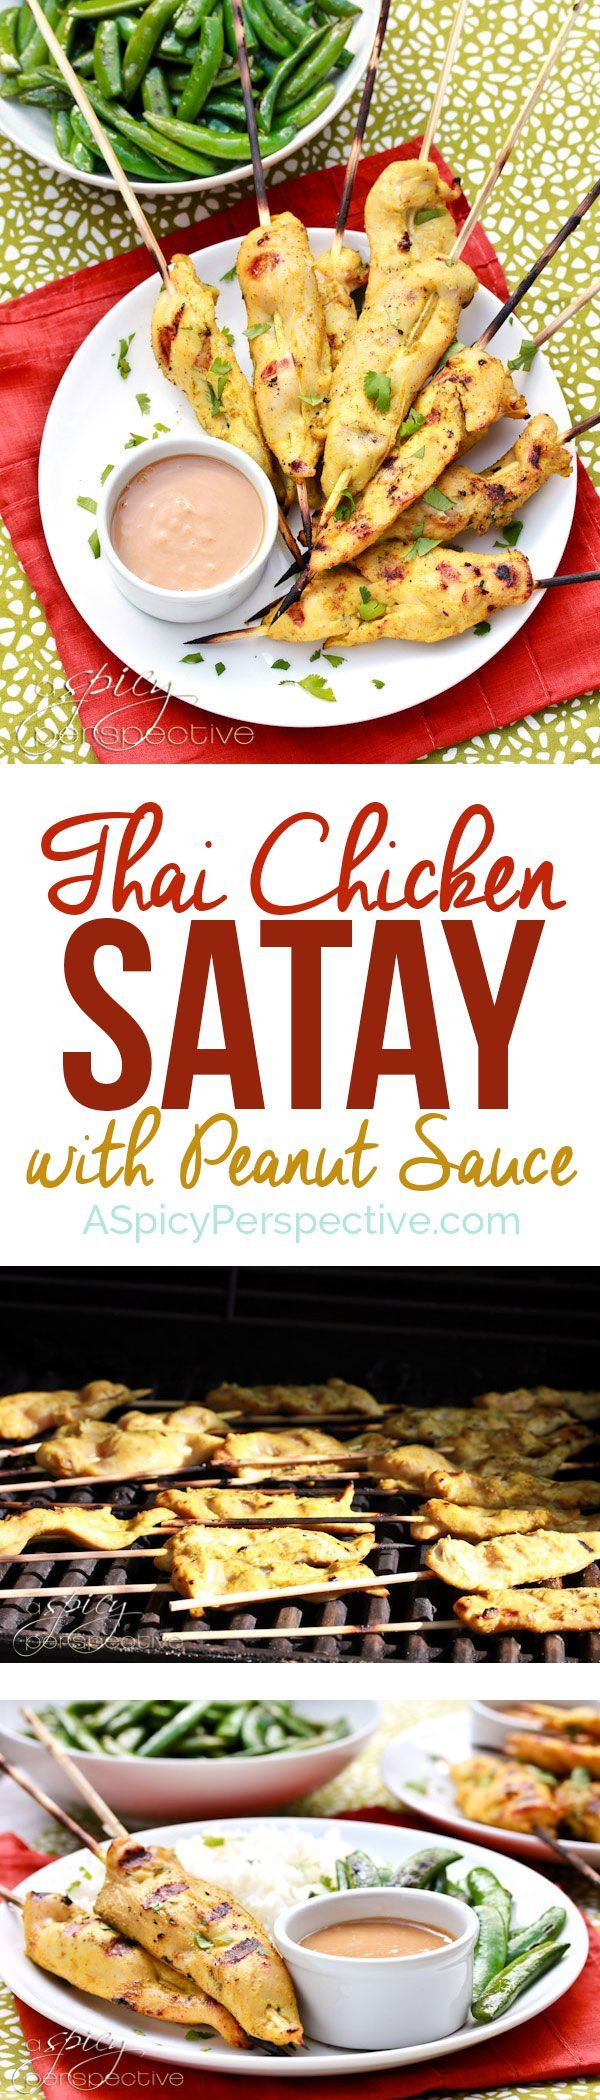 Easy Thai Chicken Satay With Peanut Sauce | http://ASpicyPerspective.com